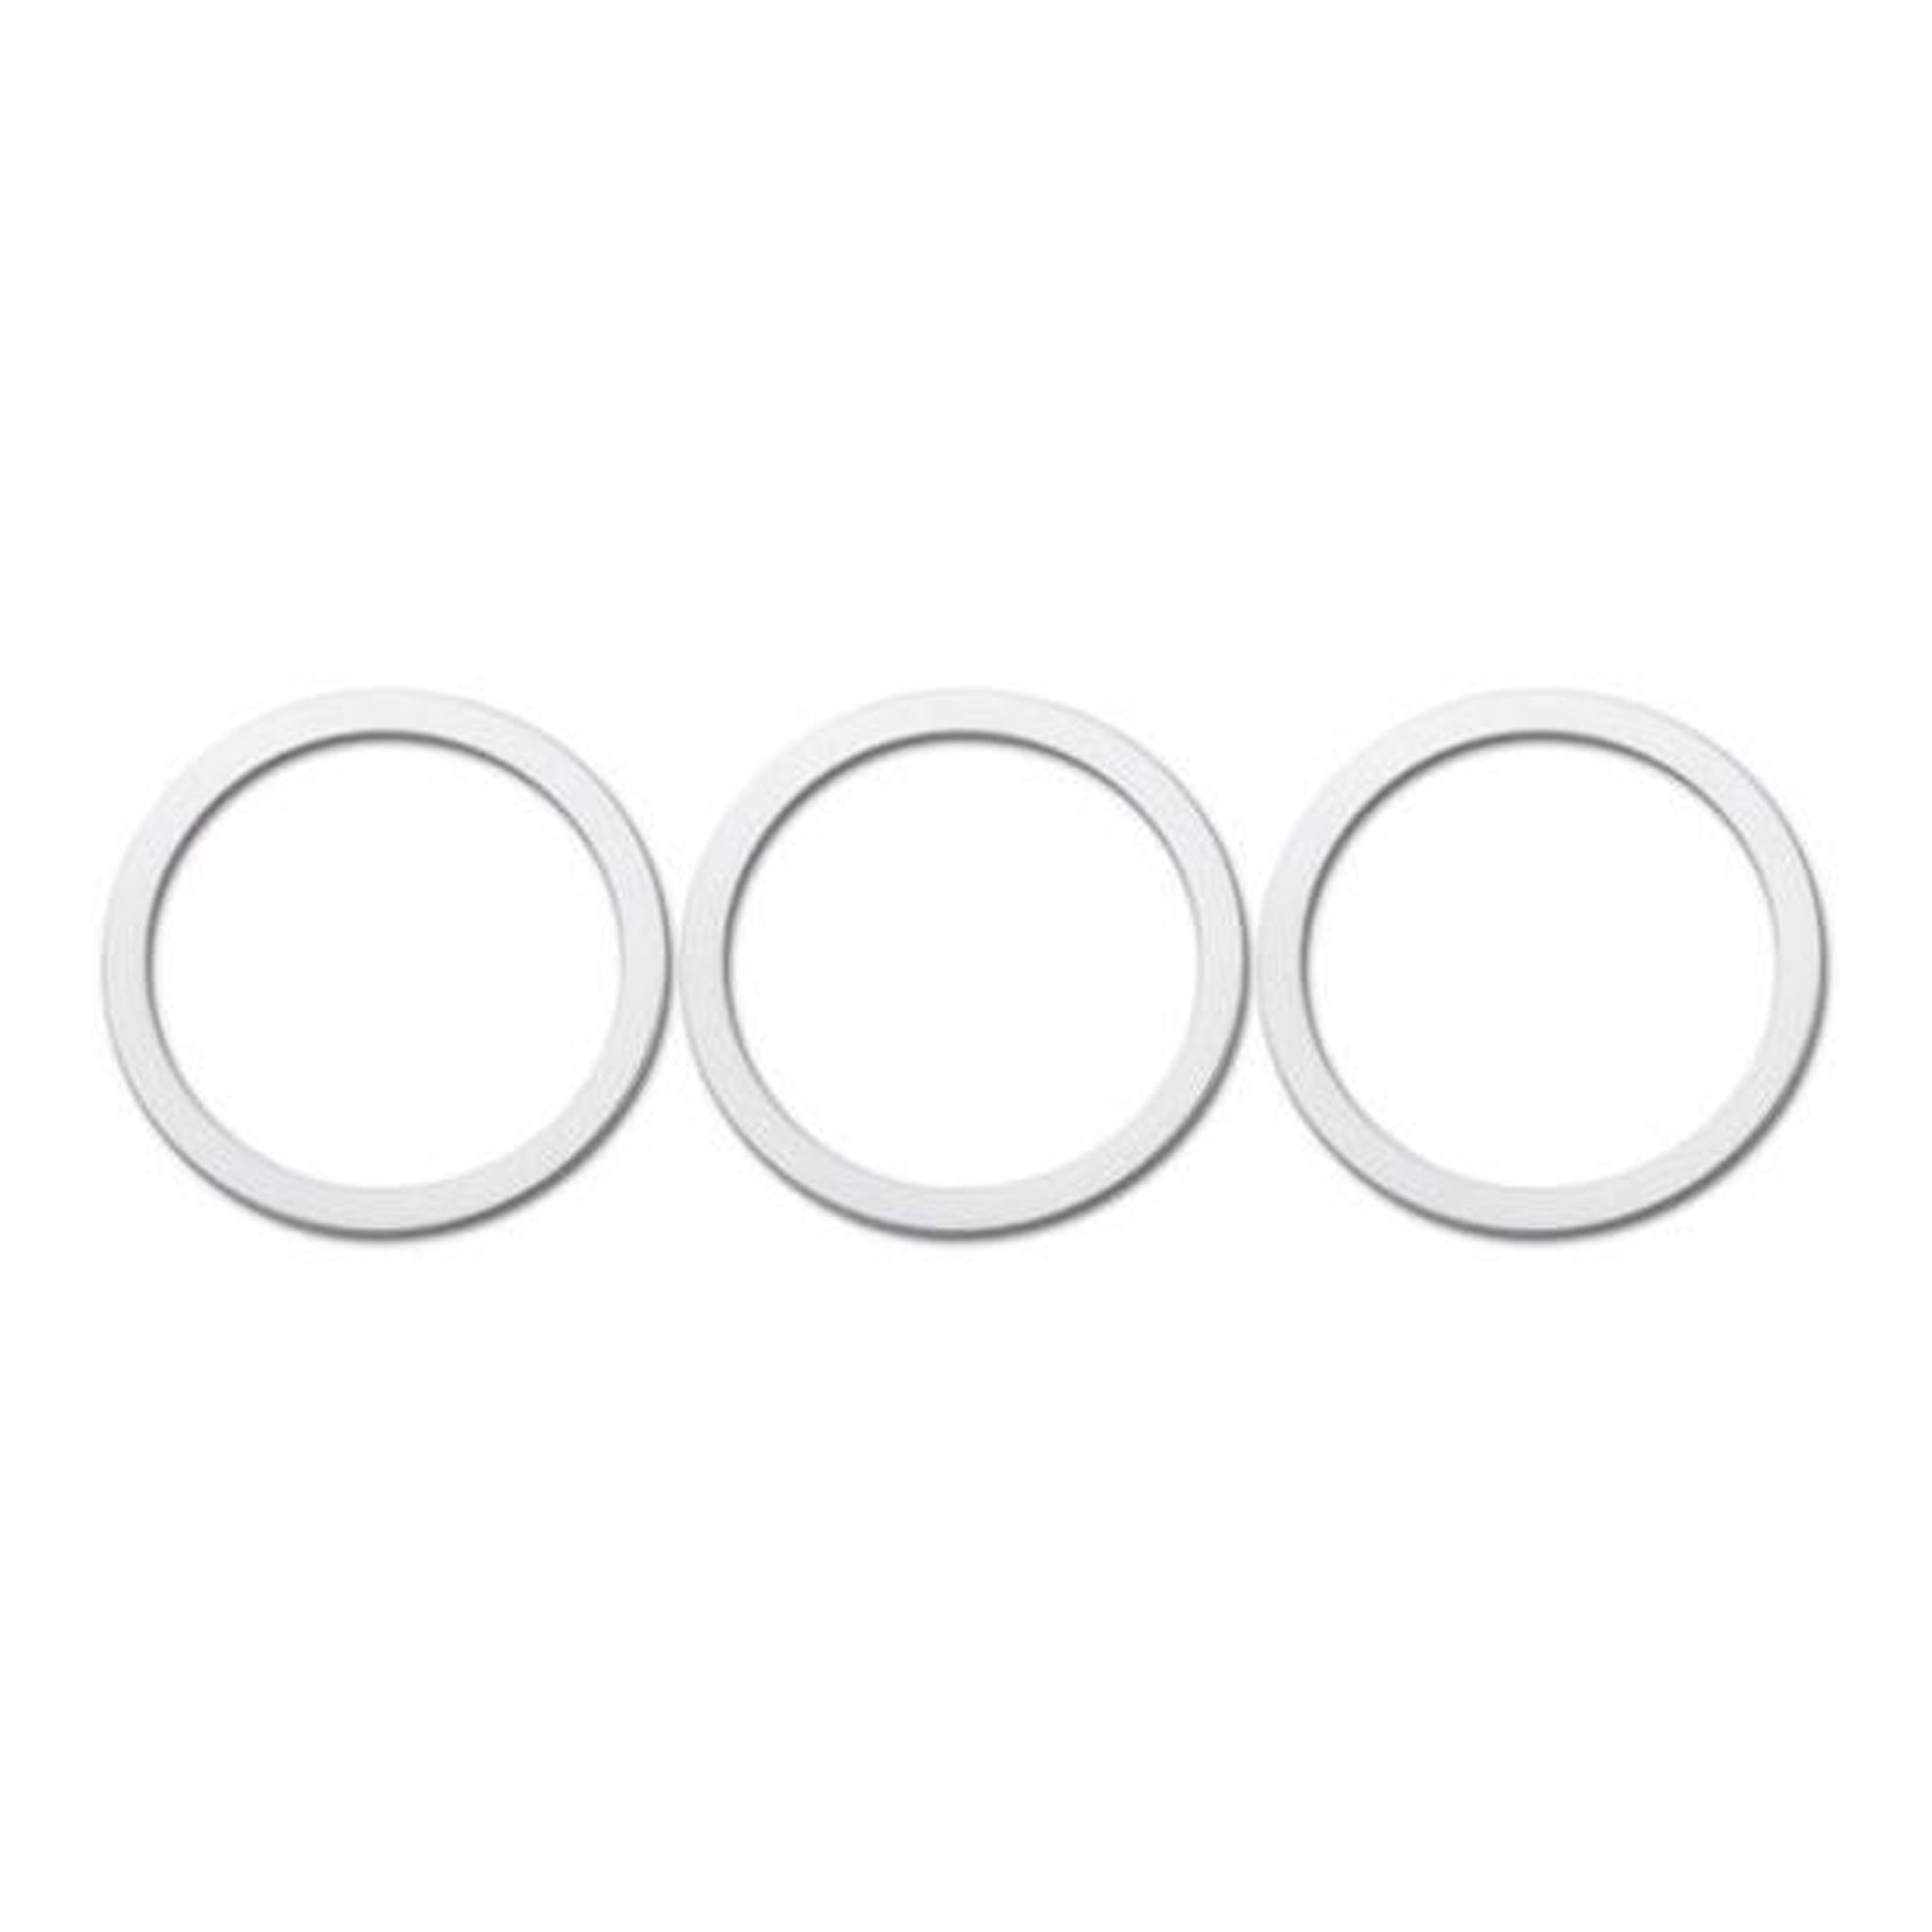 3-Pack of O-Ring Seals for the Personal Blender® Blade Assemblies.